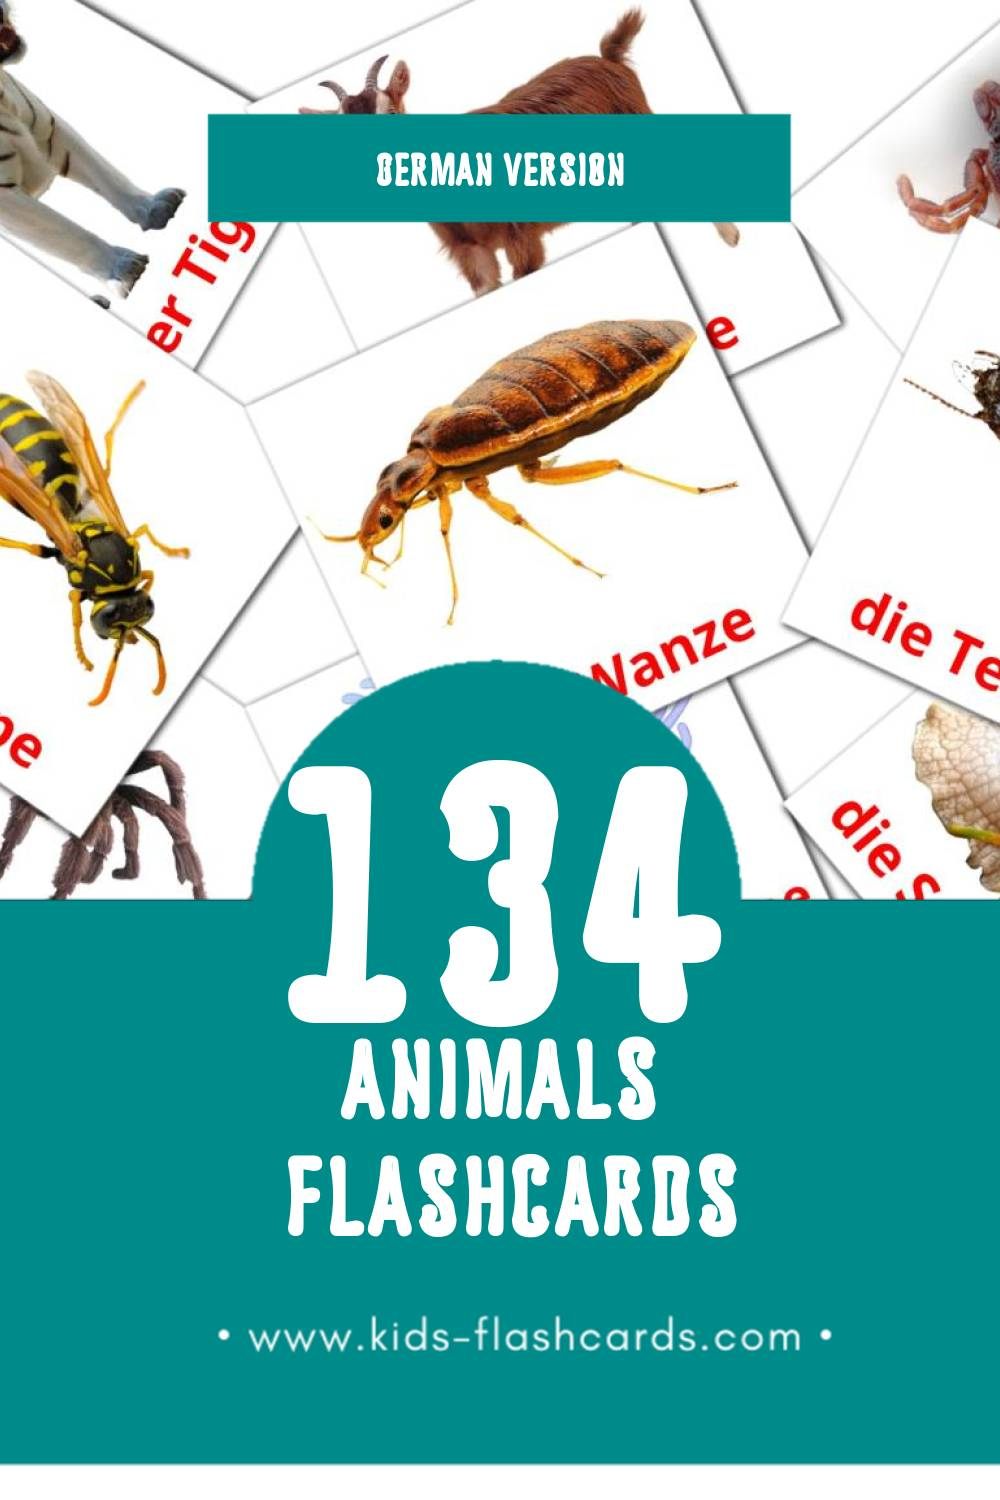 Visual Tiere Flashcards for Toddlers (128 cards in German)